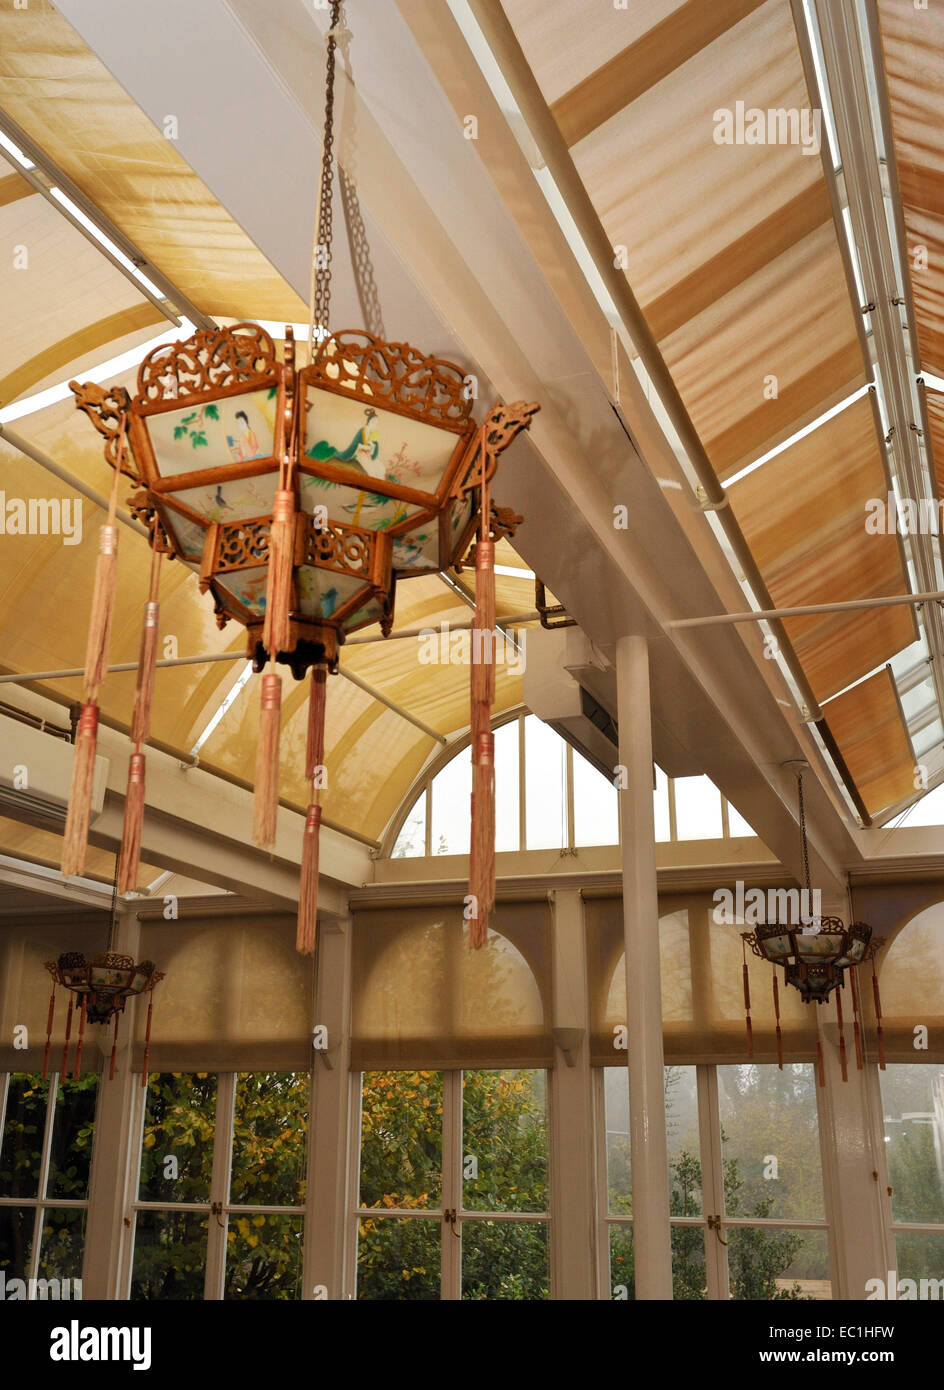 Dickens - Gad's Hill Place (Gadshill) Chinese lantern in conservatory. English novelist Charles Dickens lived here Stock Photo